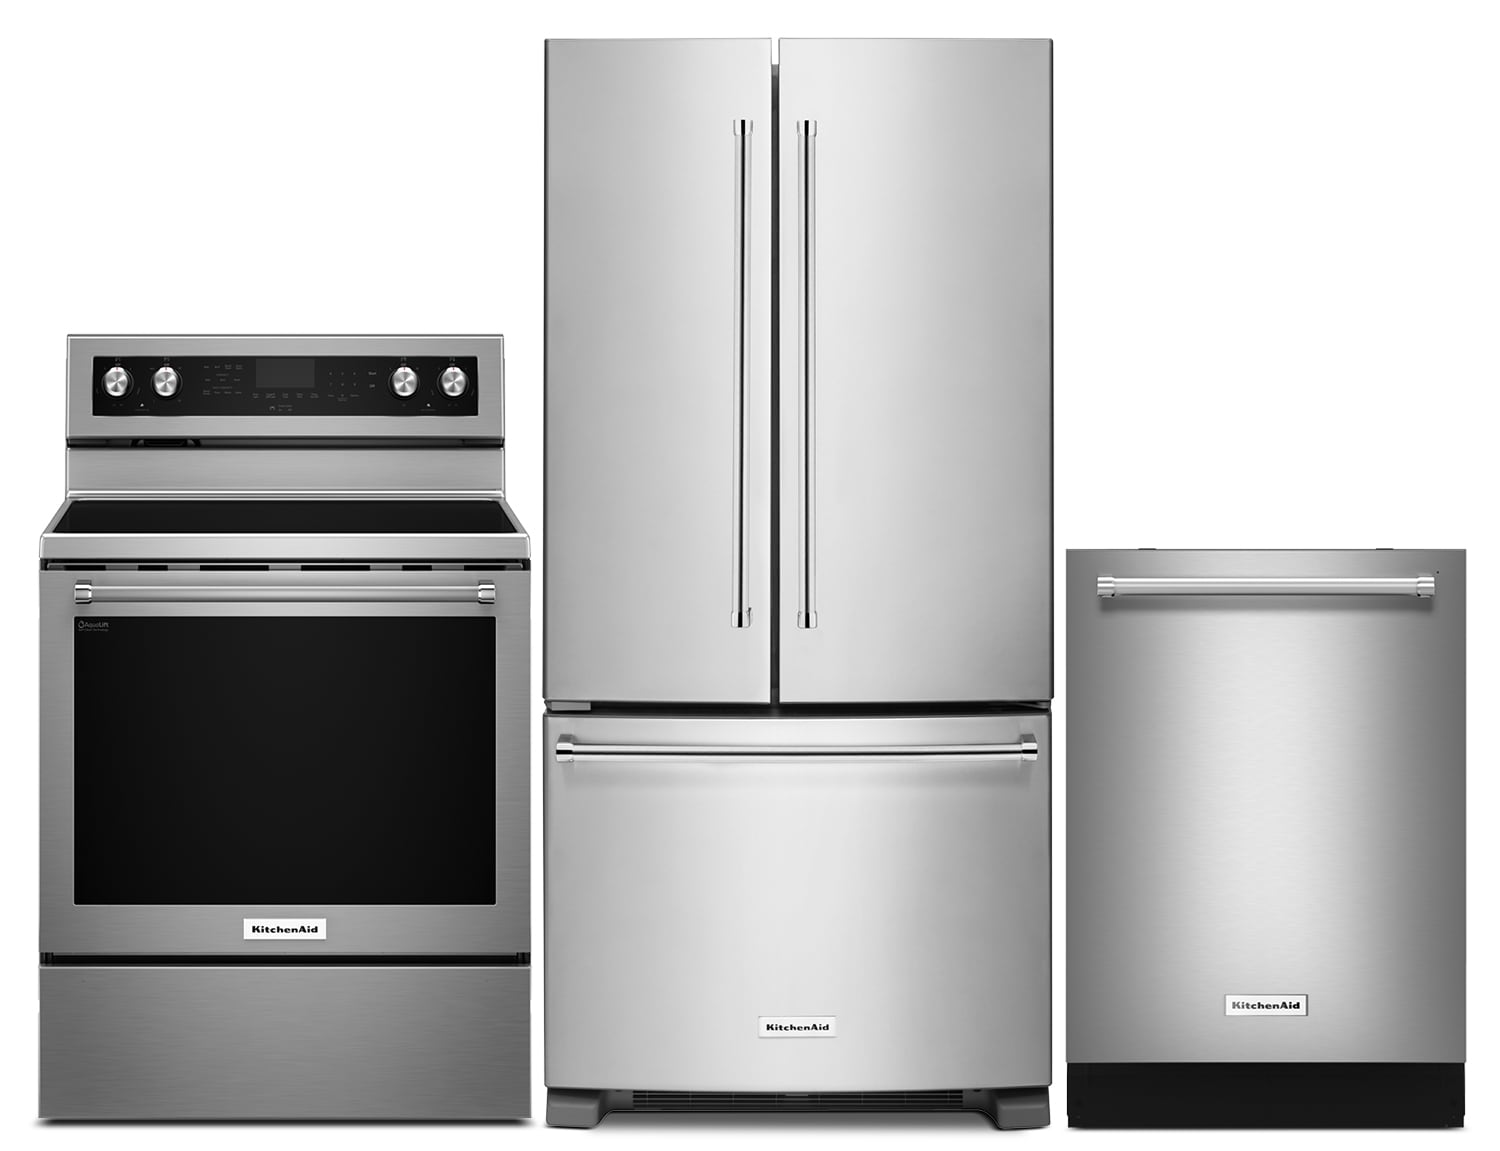 "KitchenAid 22.1 Cu. Ft. Refrigerator, 6.4 Cu. Ft. Range and 24"" Dishwasher - Stainless Steel"